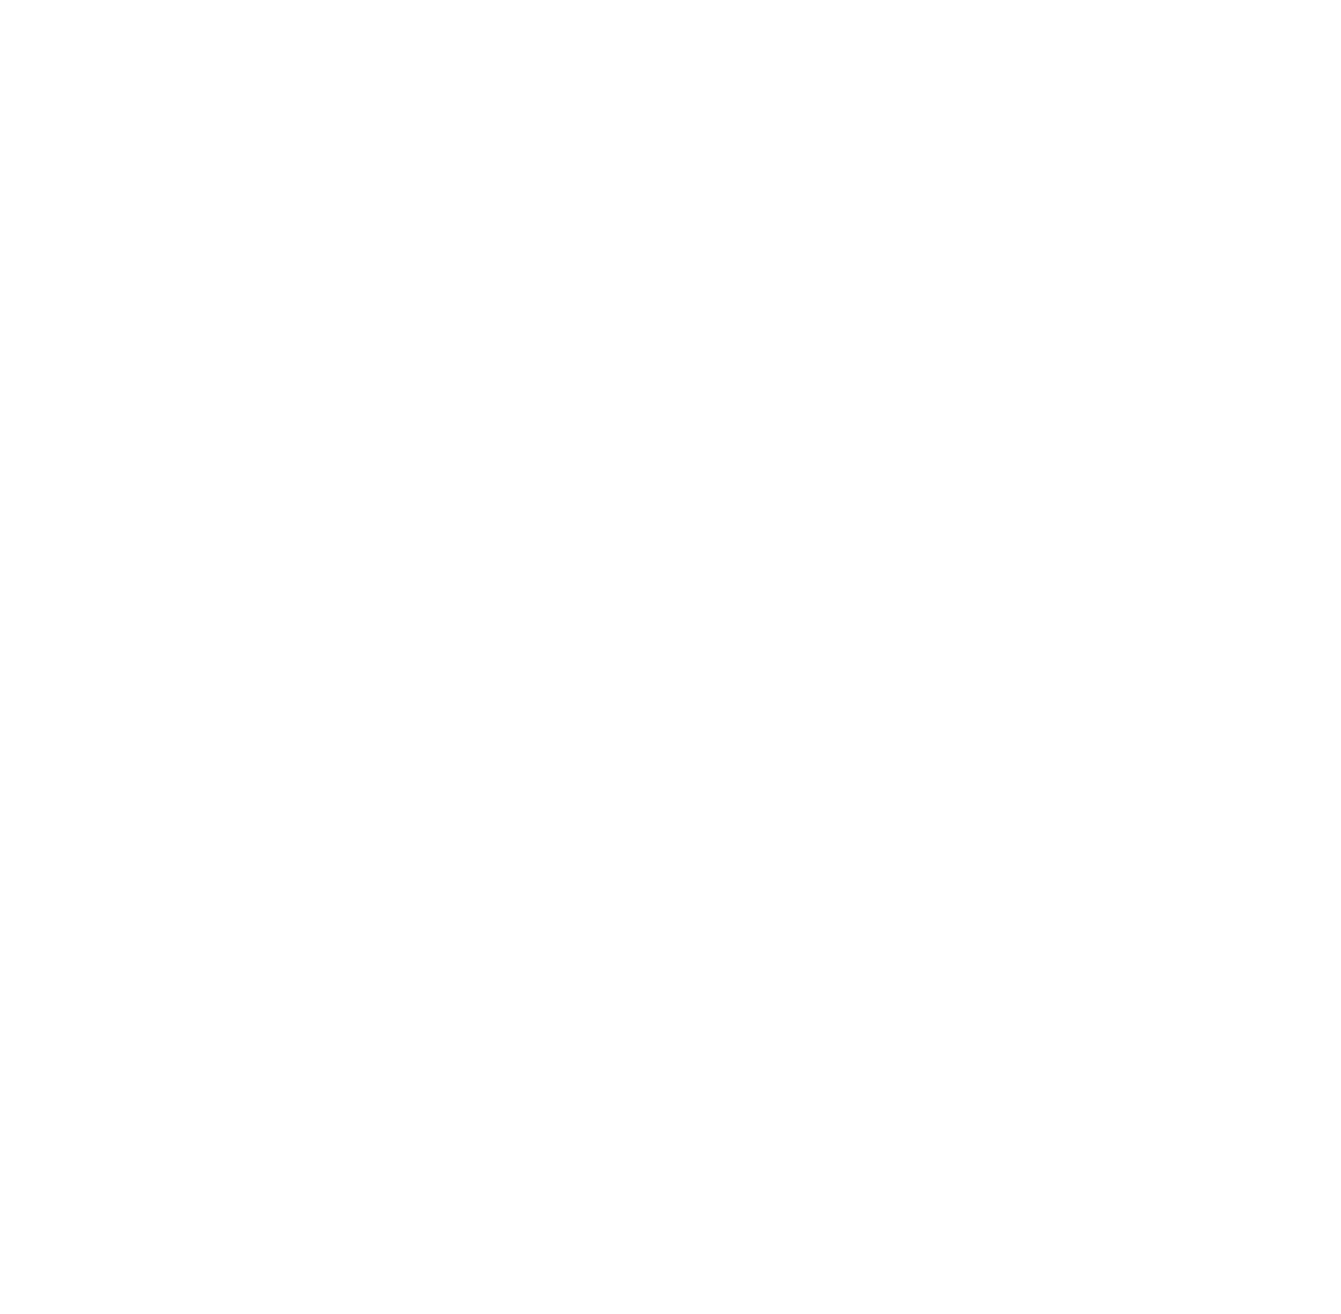 Be Strongest Homeware